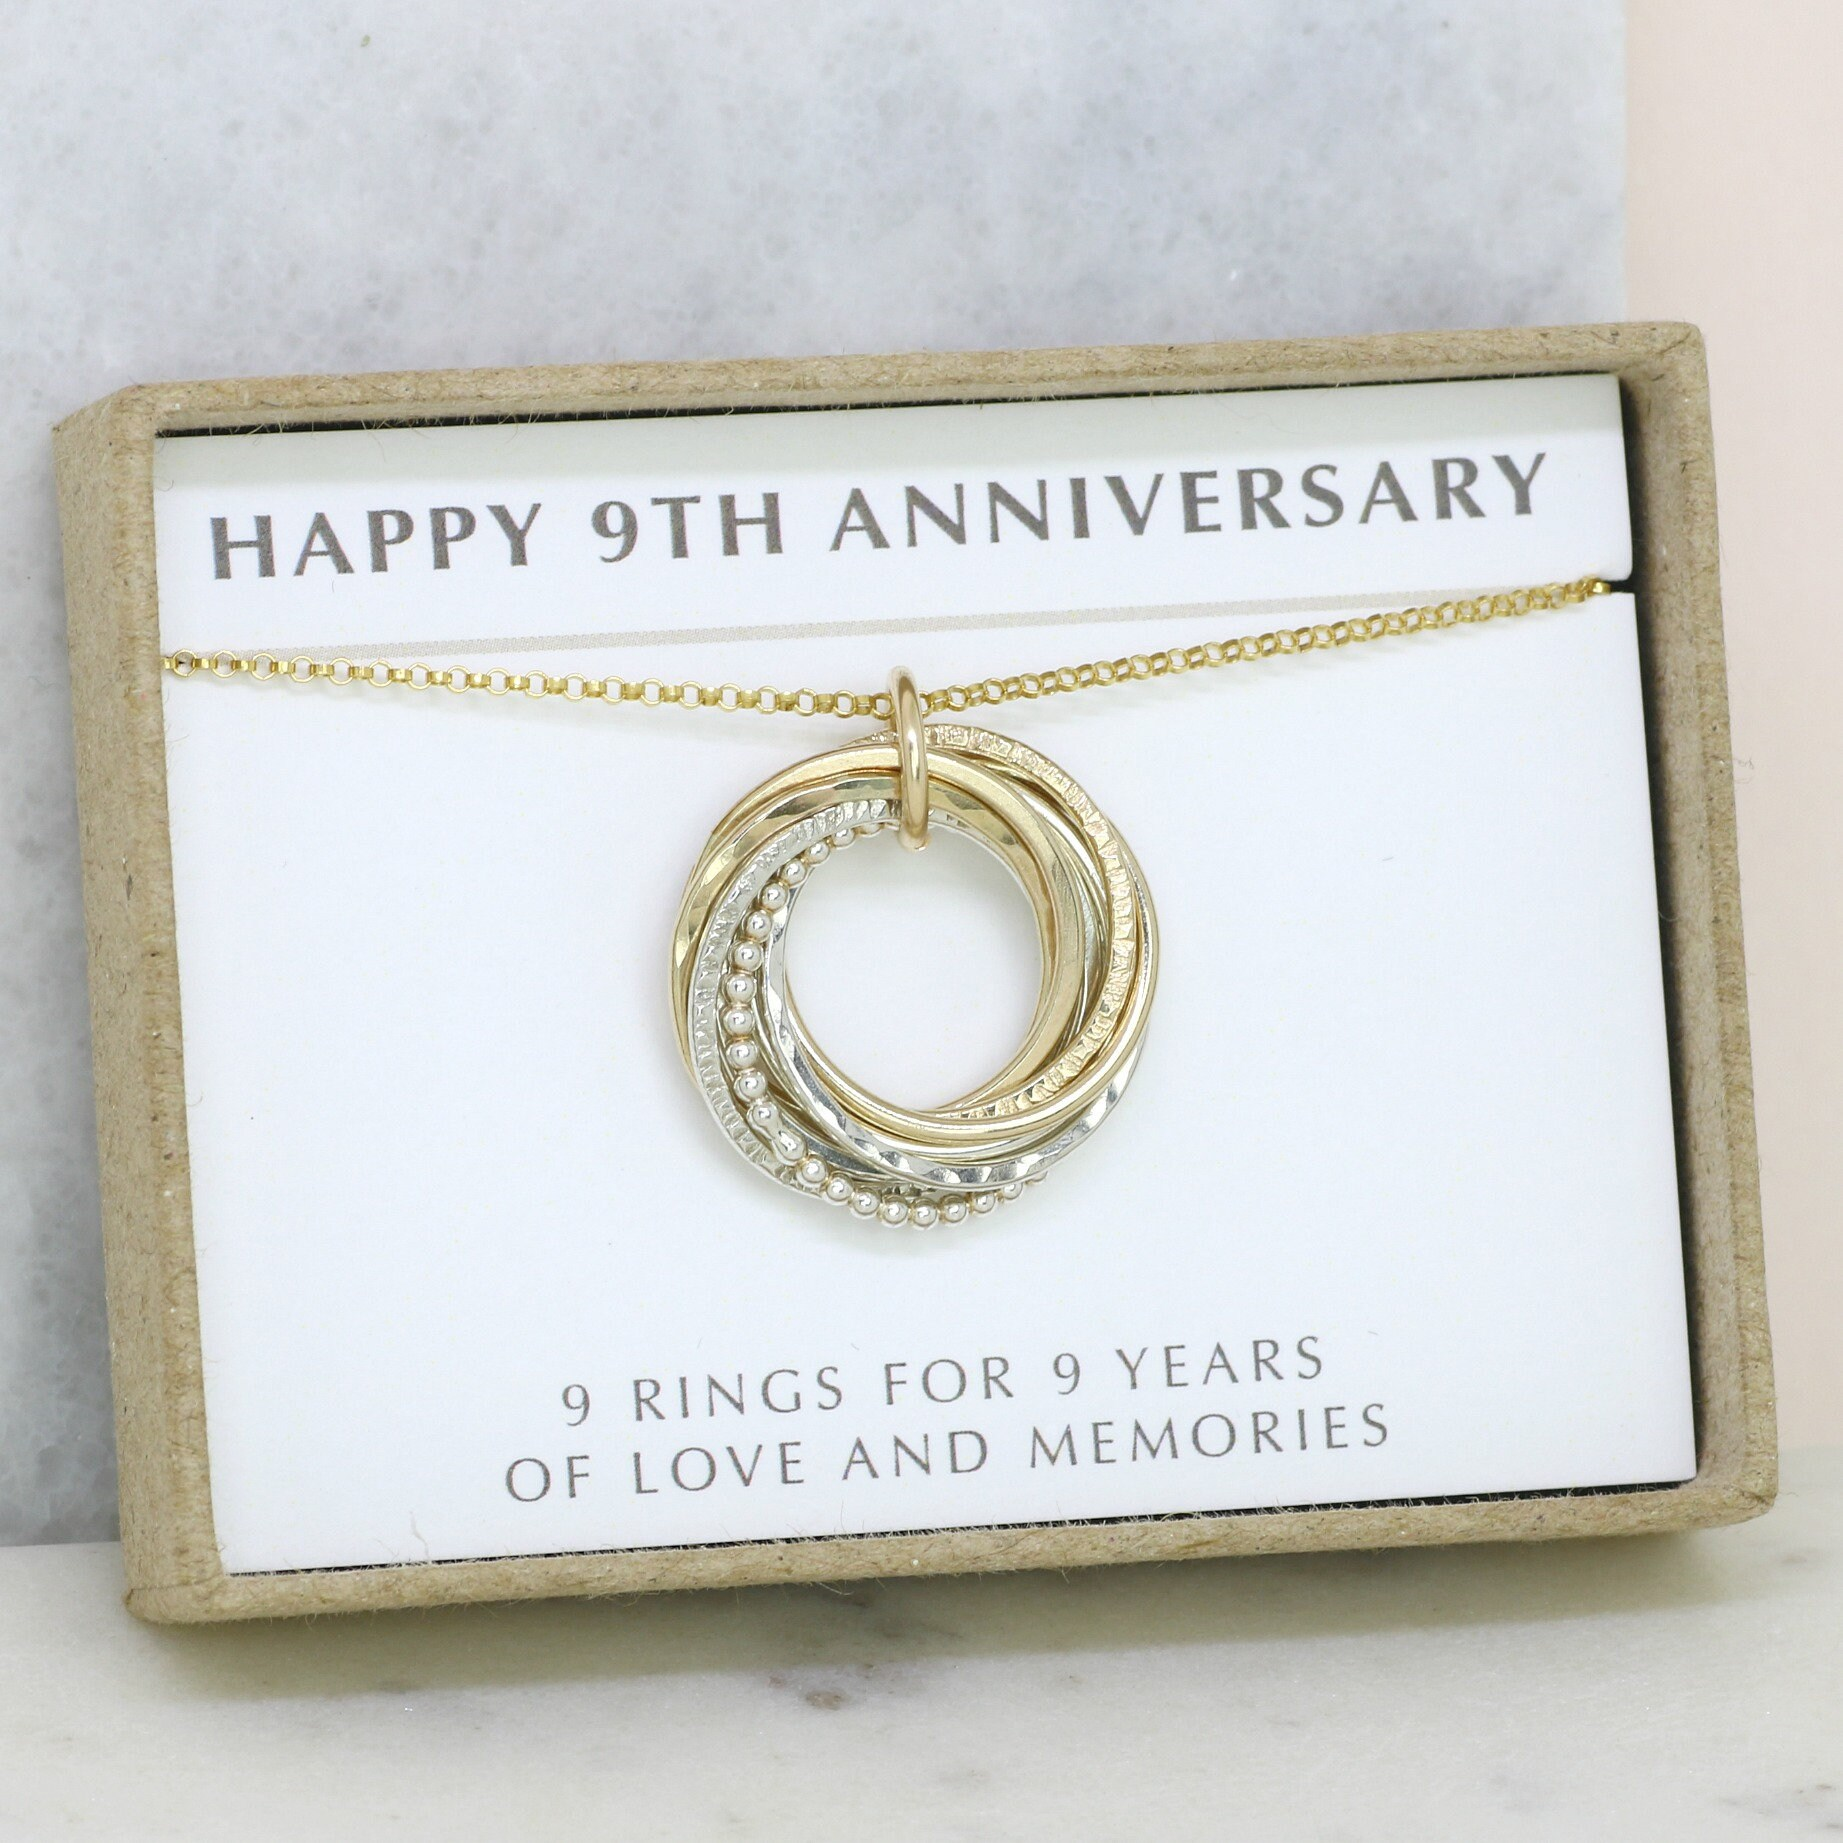 Meaningful Wedding Gift Ideas: 9th Anniversary Gift For Wife Meaningful Gift For Wife 9